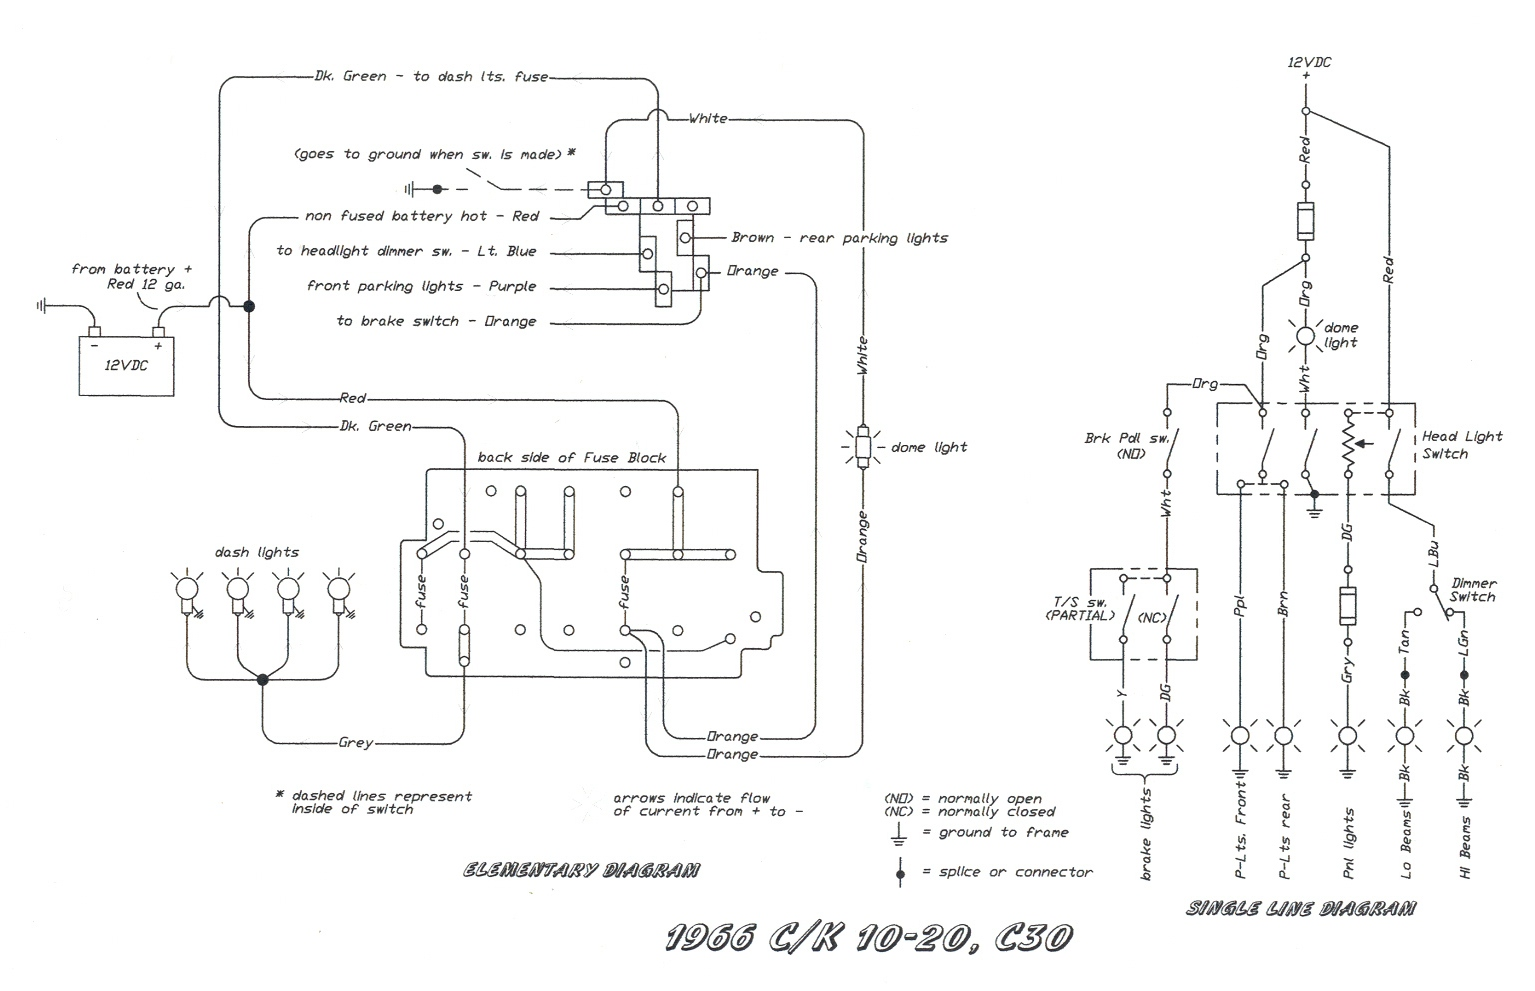 dimmer switch wiring diagram gmc wiring diagram blog 1959 gmc wiring diagram wiring diagram page dimmer [ 1535 x 991 Pixel ]